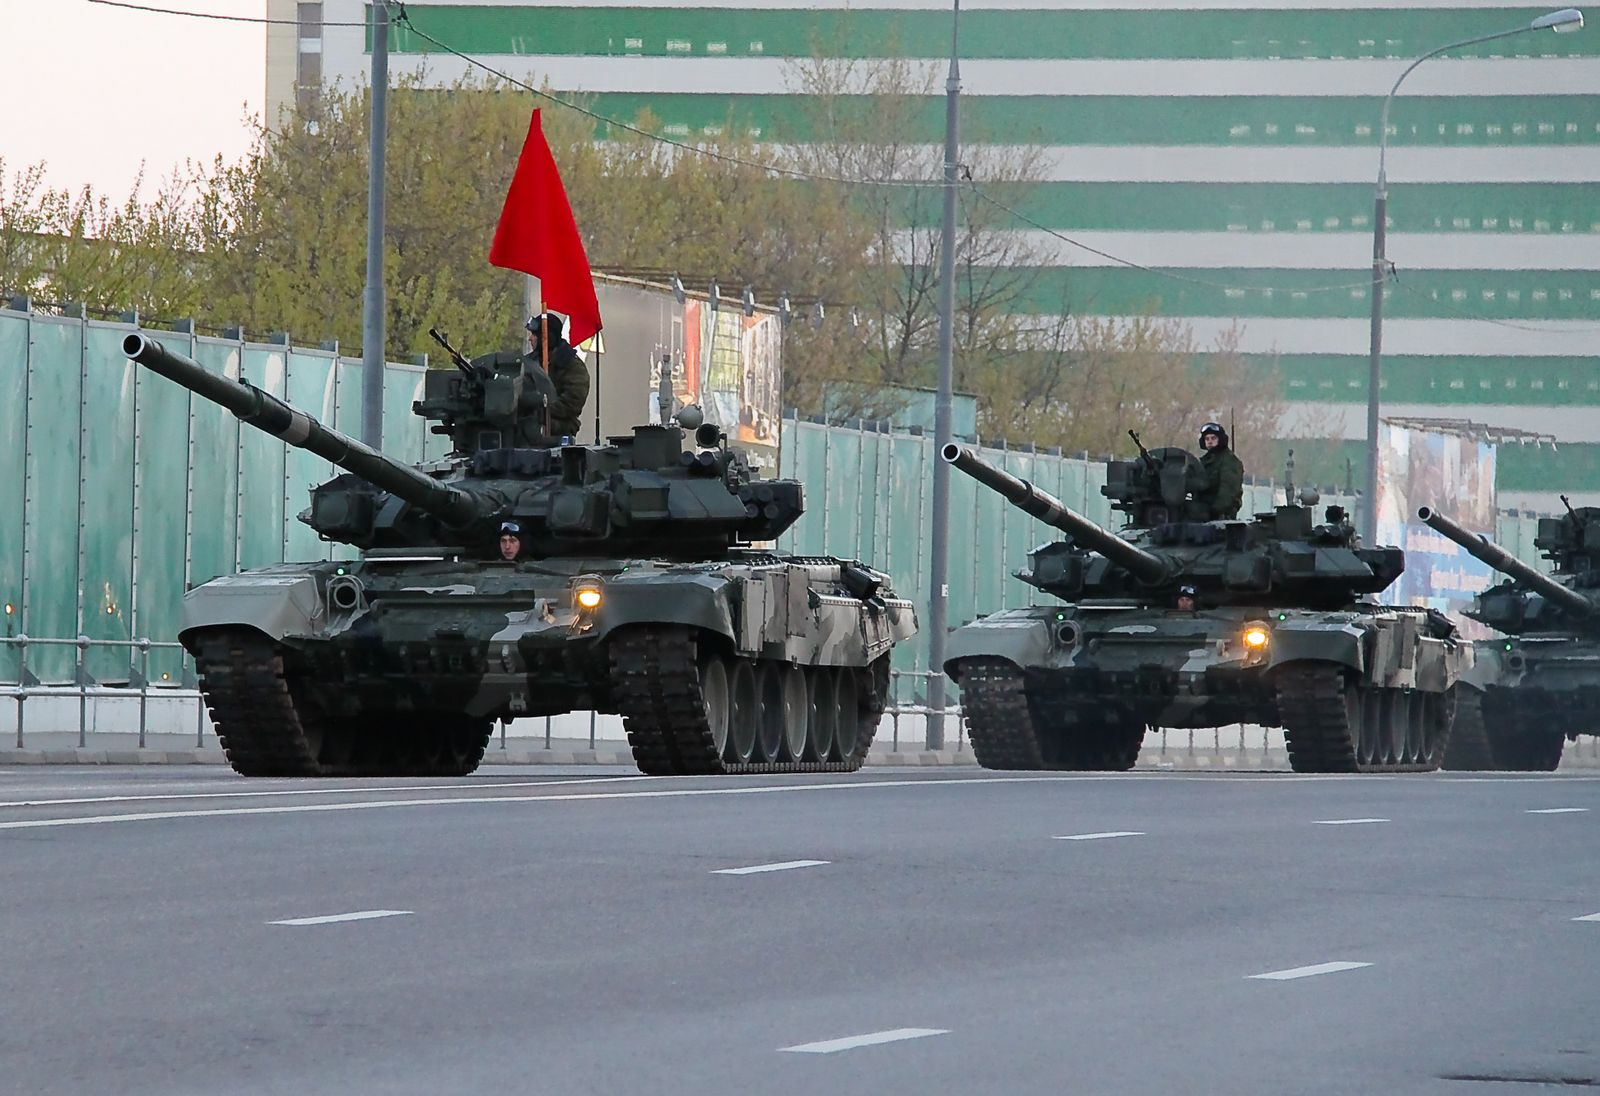 Modern_T-90_tank_of_the_Russian_Army